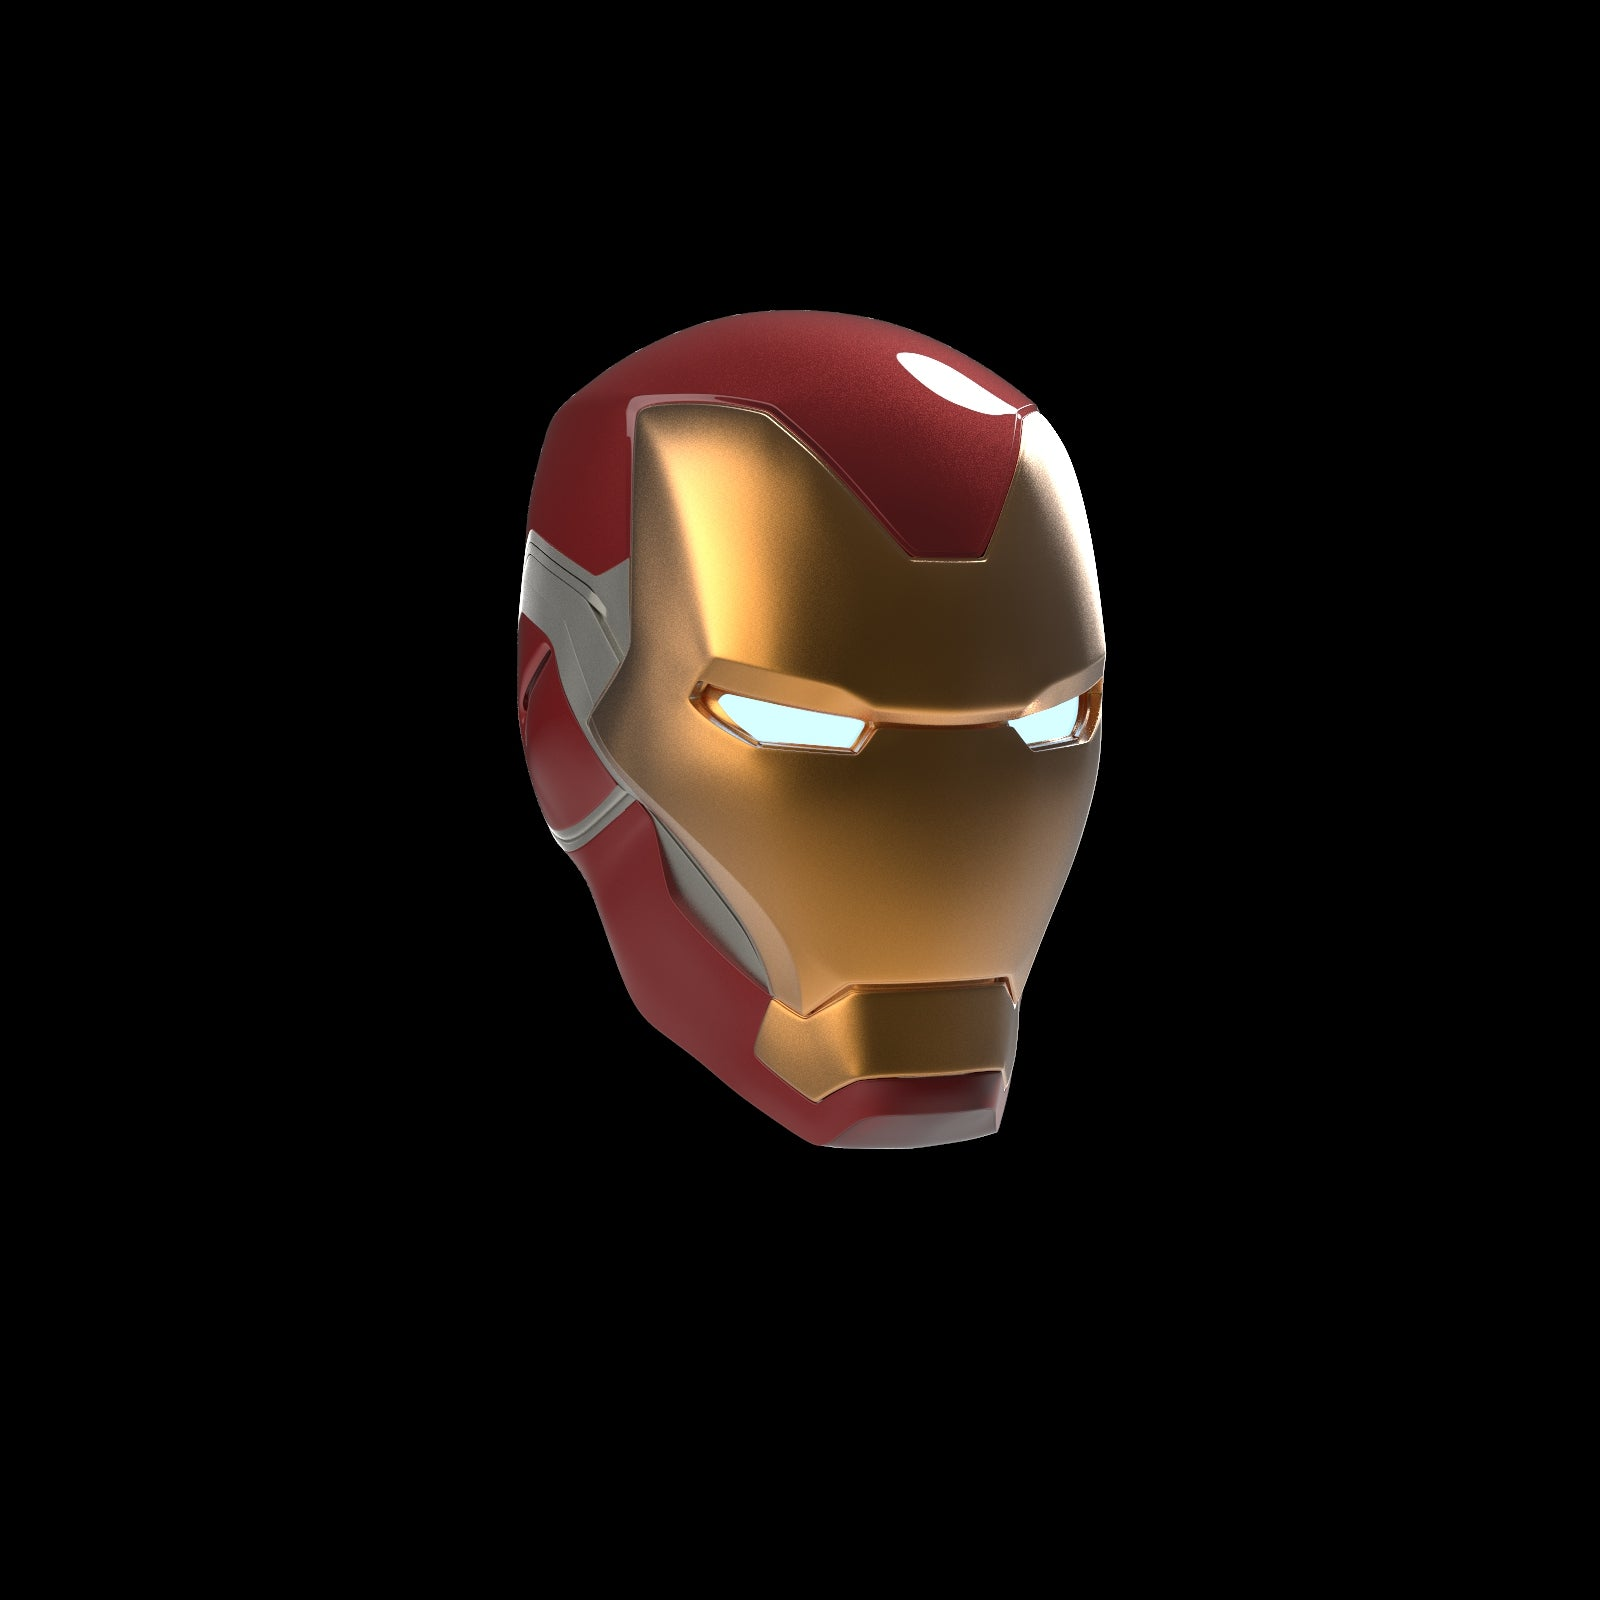 Iron Man figure stl